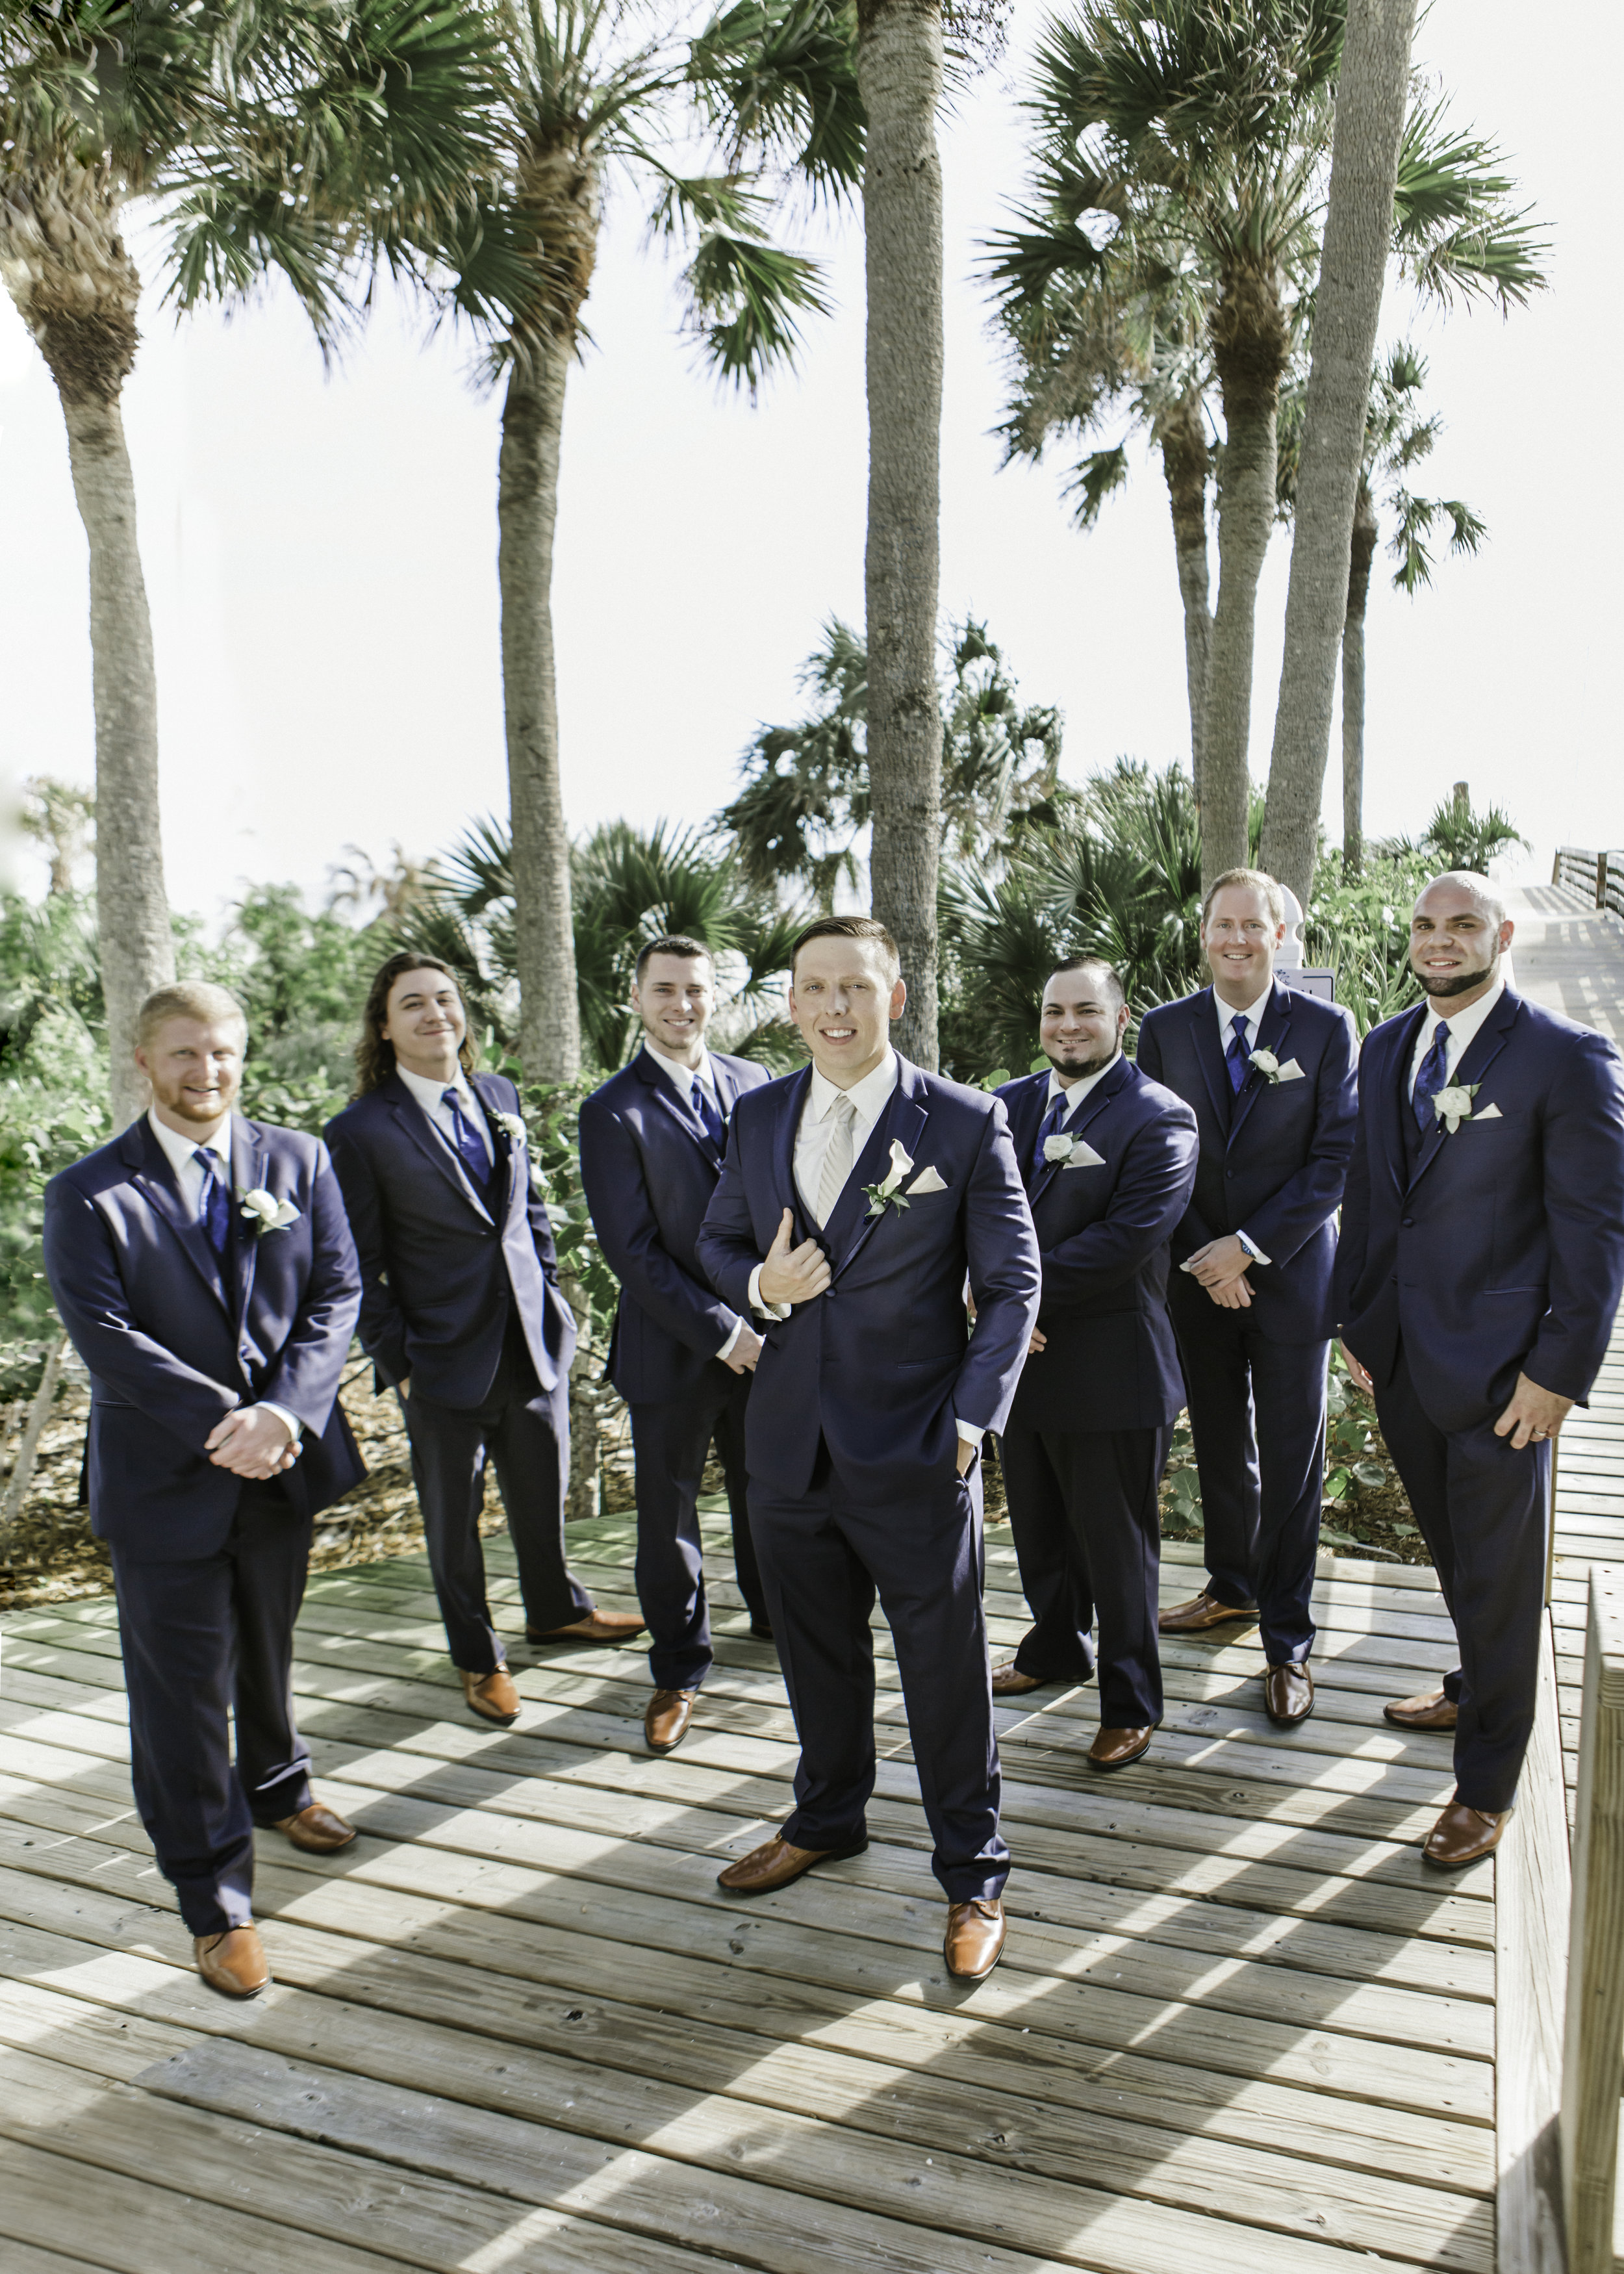 Groom & Groomsmen style with navy tuxedos and brown leather shoes boardwalk